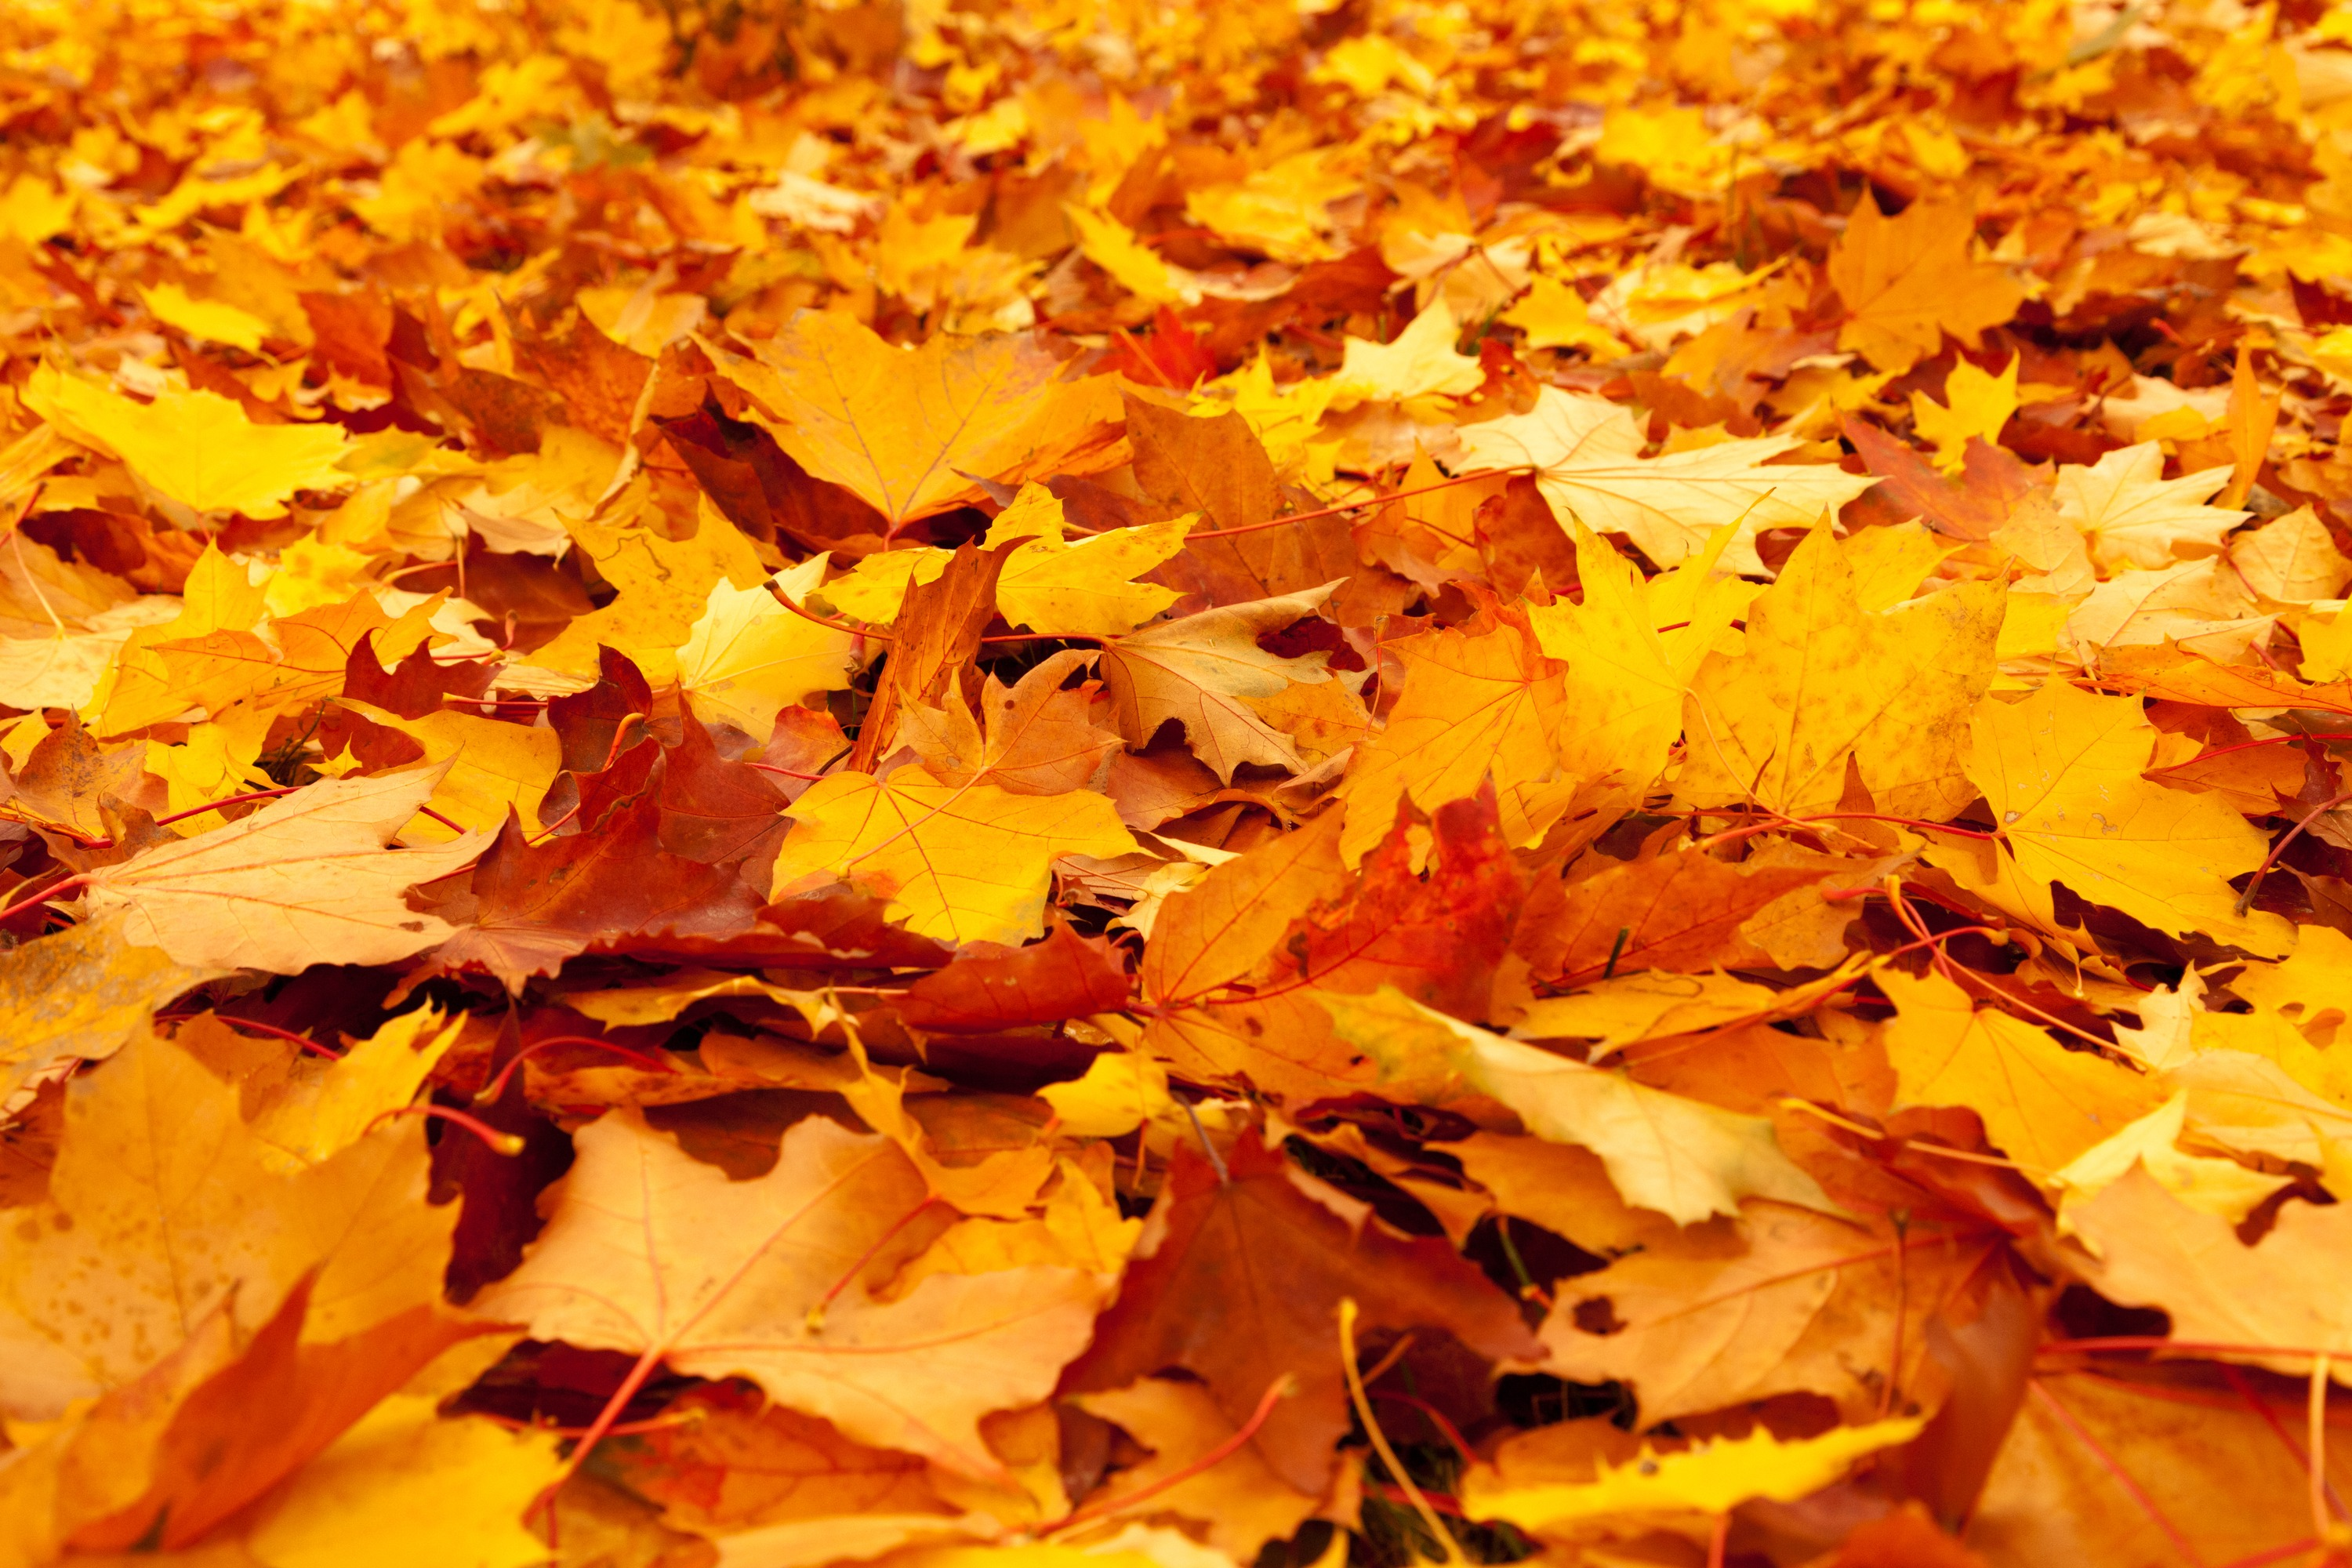 yellow leaves on forest floor image free stock photo